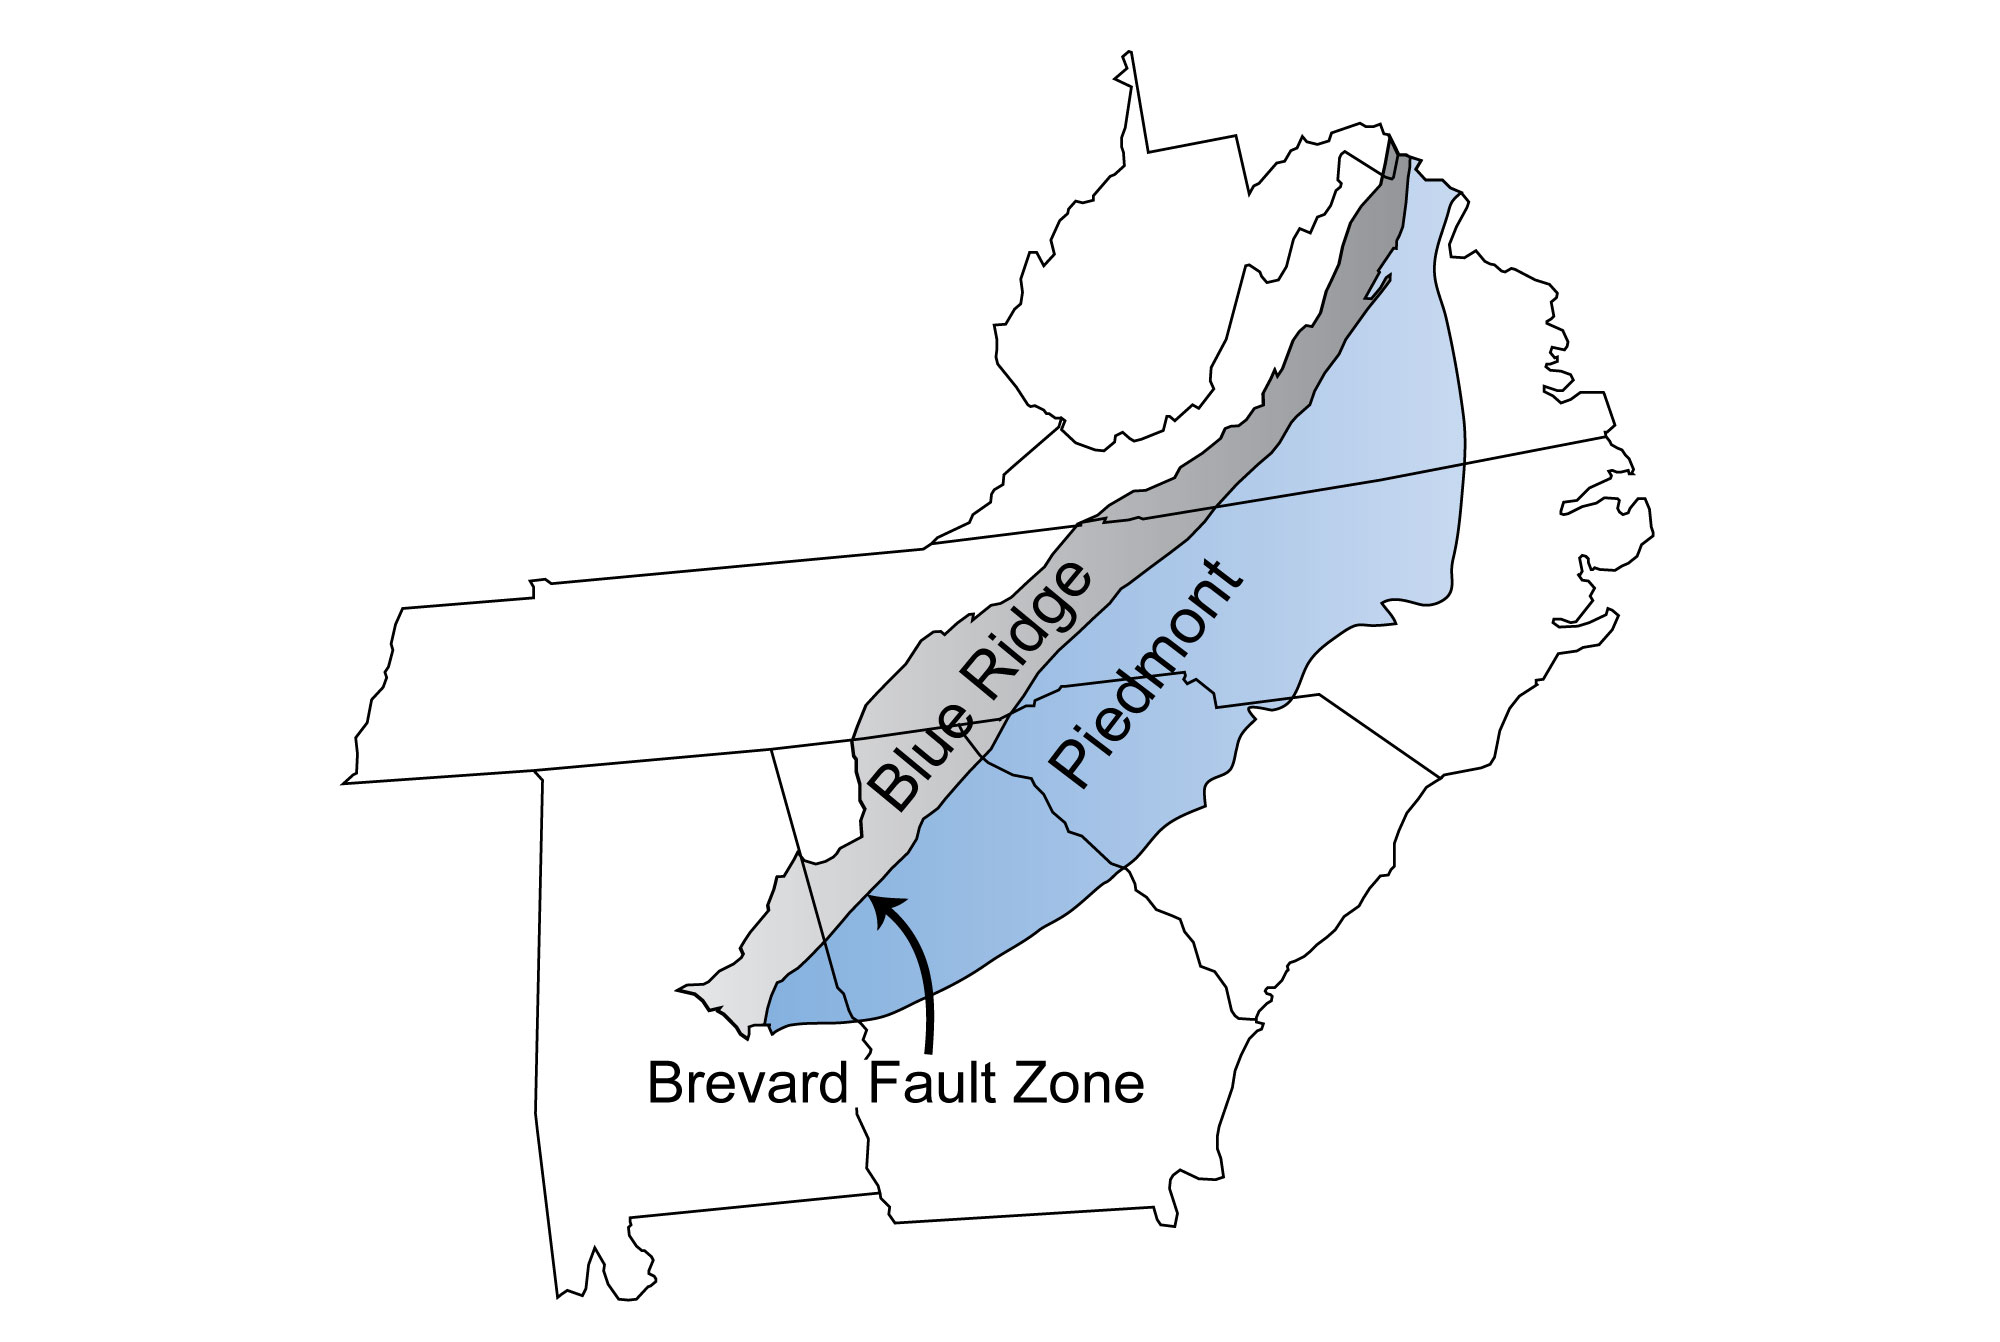 Map depicting the position of the Brevard Fault Zone, which separates the Blue Ridge and Piedmont regions.